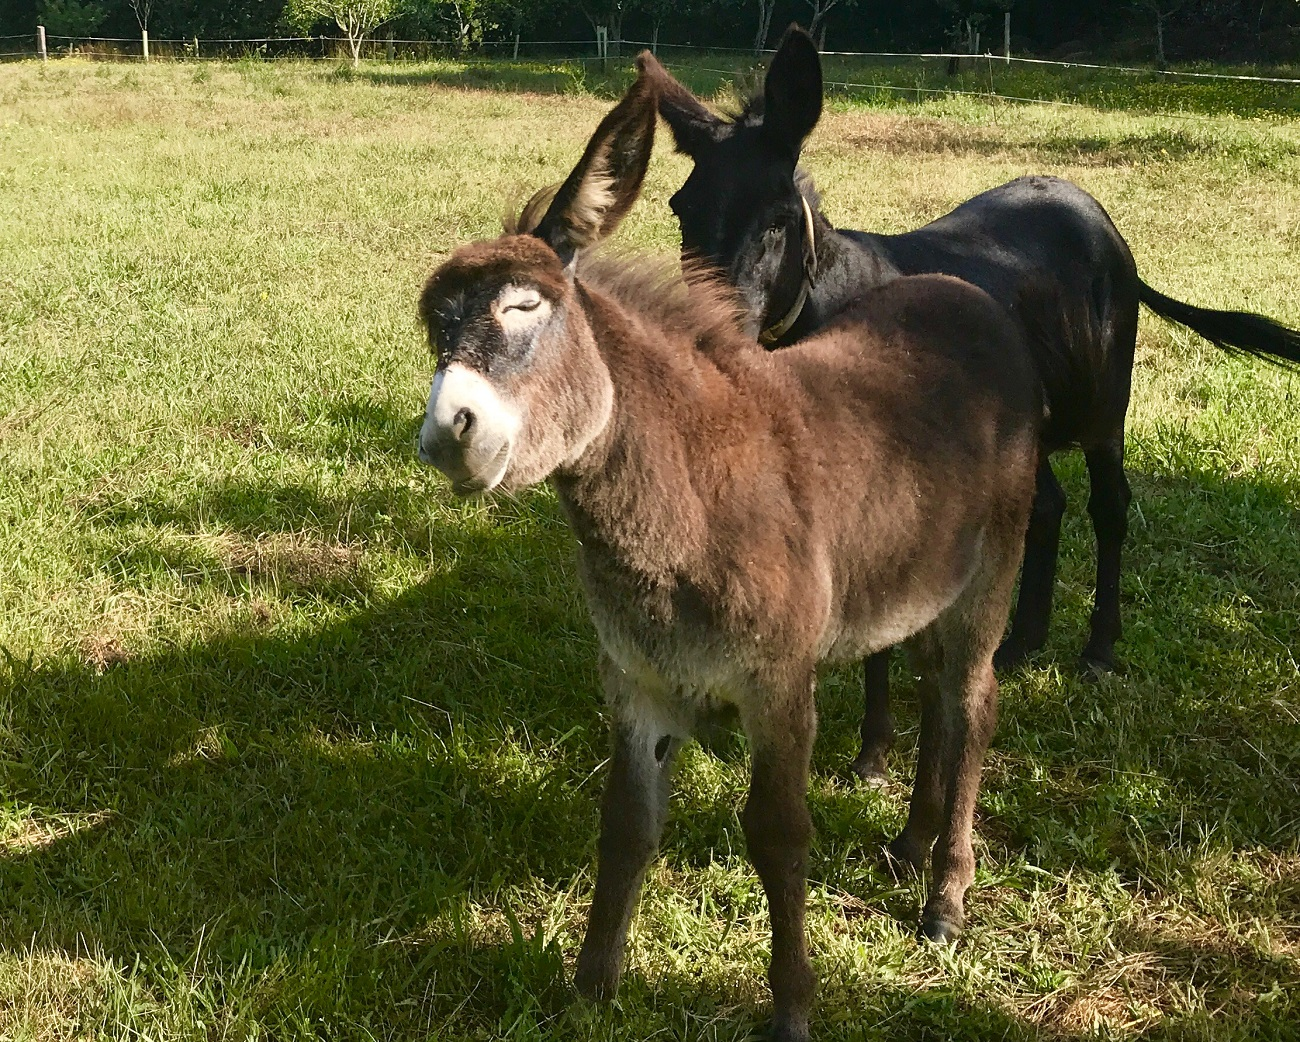 Donkeys burro tanquian organic farm panton ribeira sacra galicia animals photo art travel